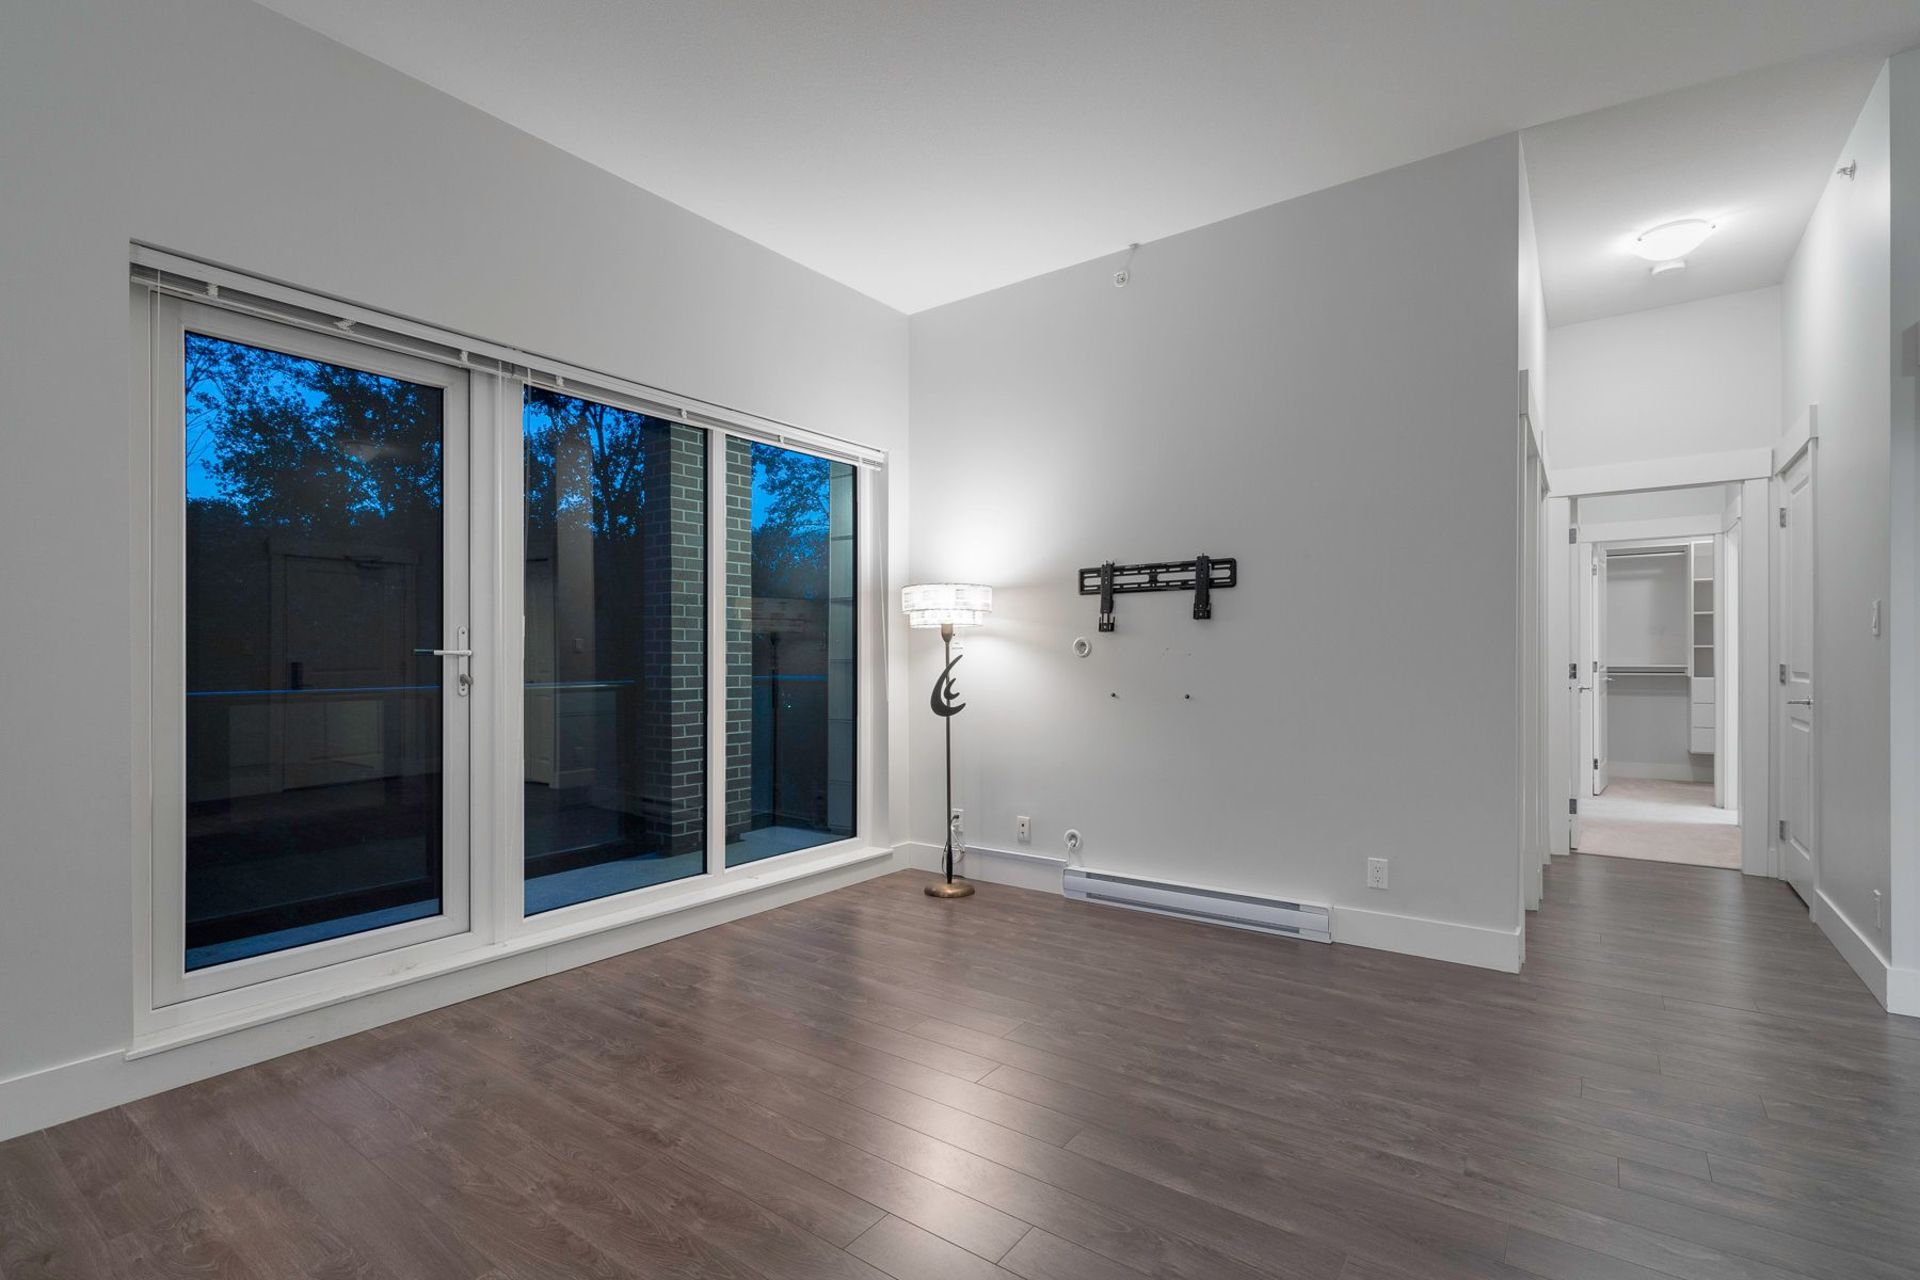 zjal0hxw at 501 - 2362 Whyte Avenue, Central Pt Coquitlam, Port Coquitlam